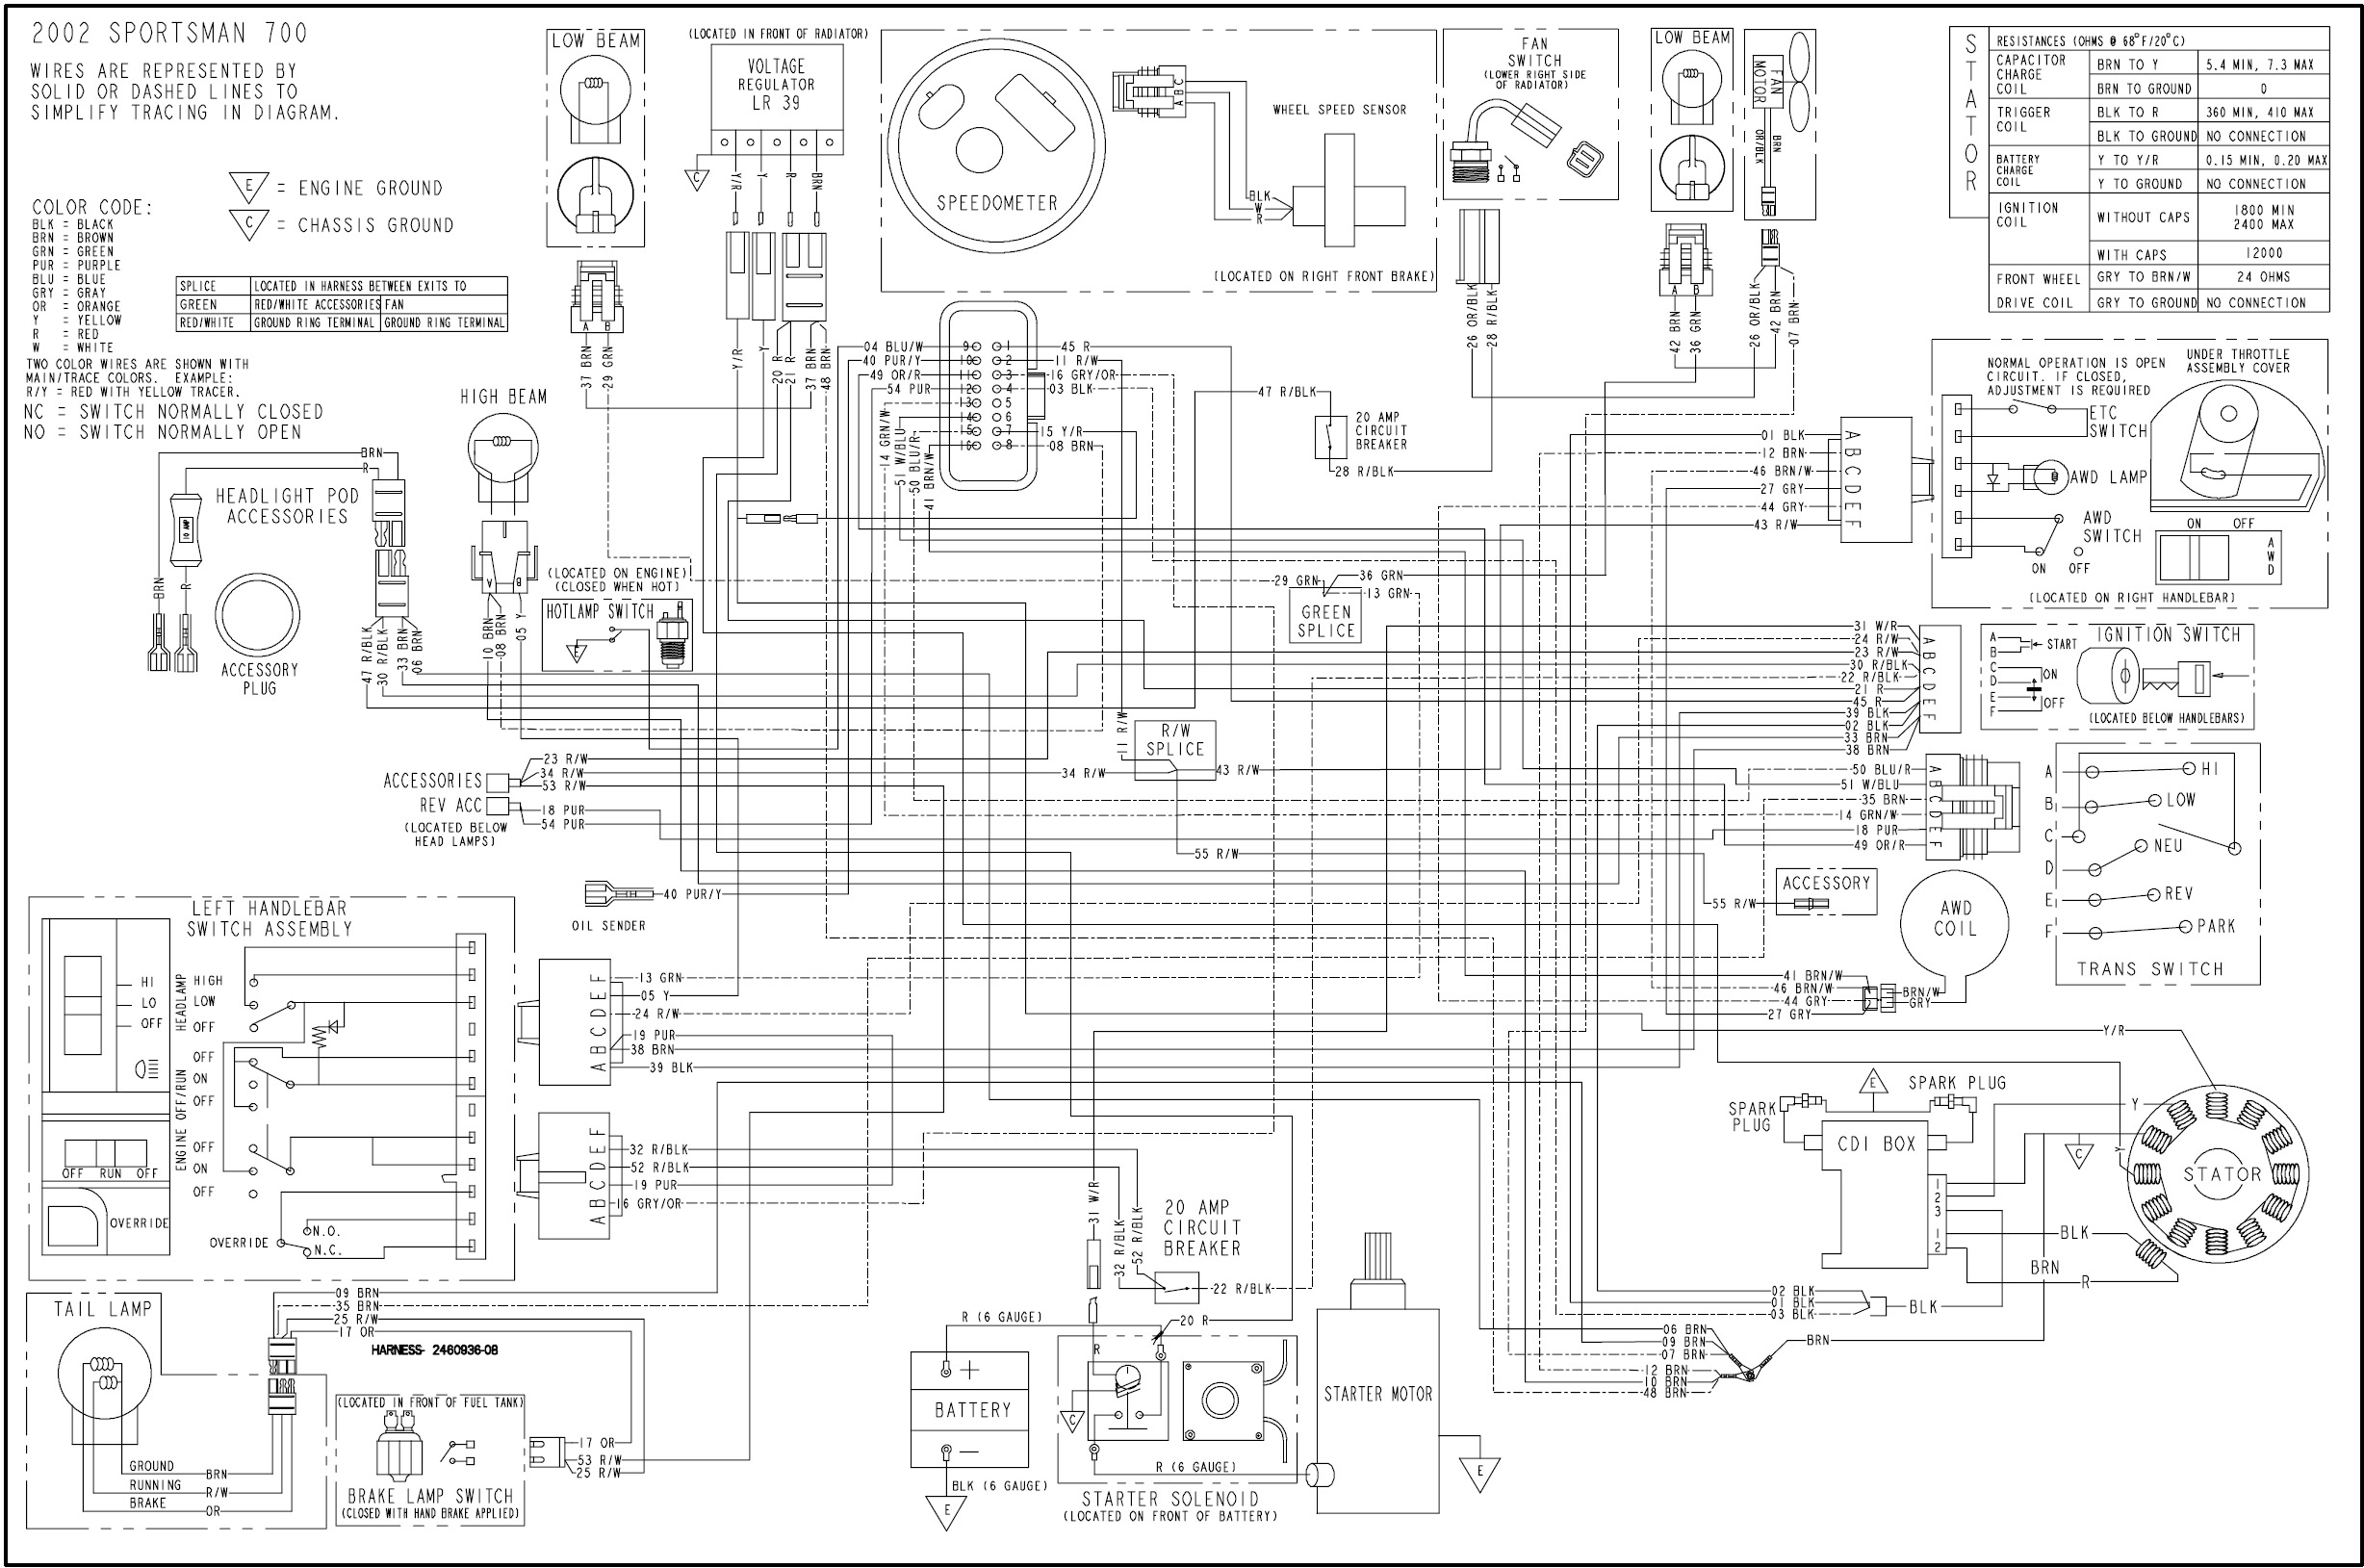 DIAGRAM] 2005 Polaris Sportsman 700 Wiring Diagram FULL Version HD Quality Wiring  Diagram - TEEREACTION.MAI-LIE.FRteereaction.mai-lie.fr